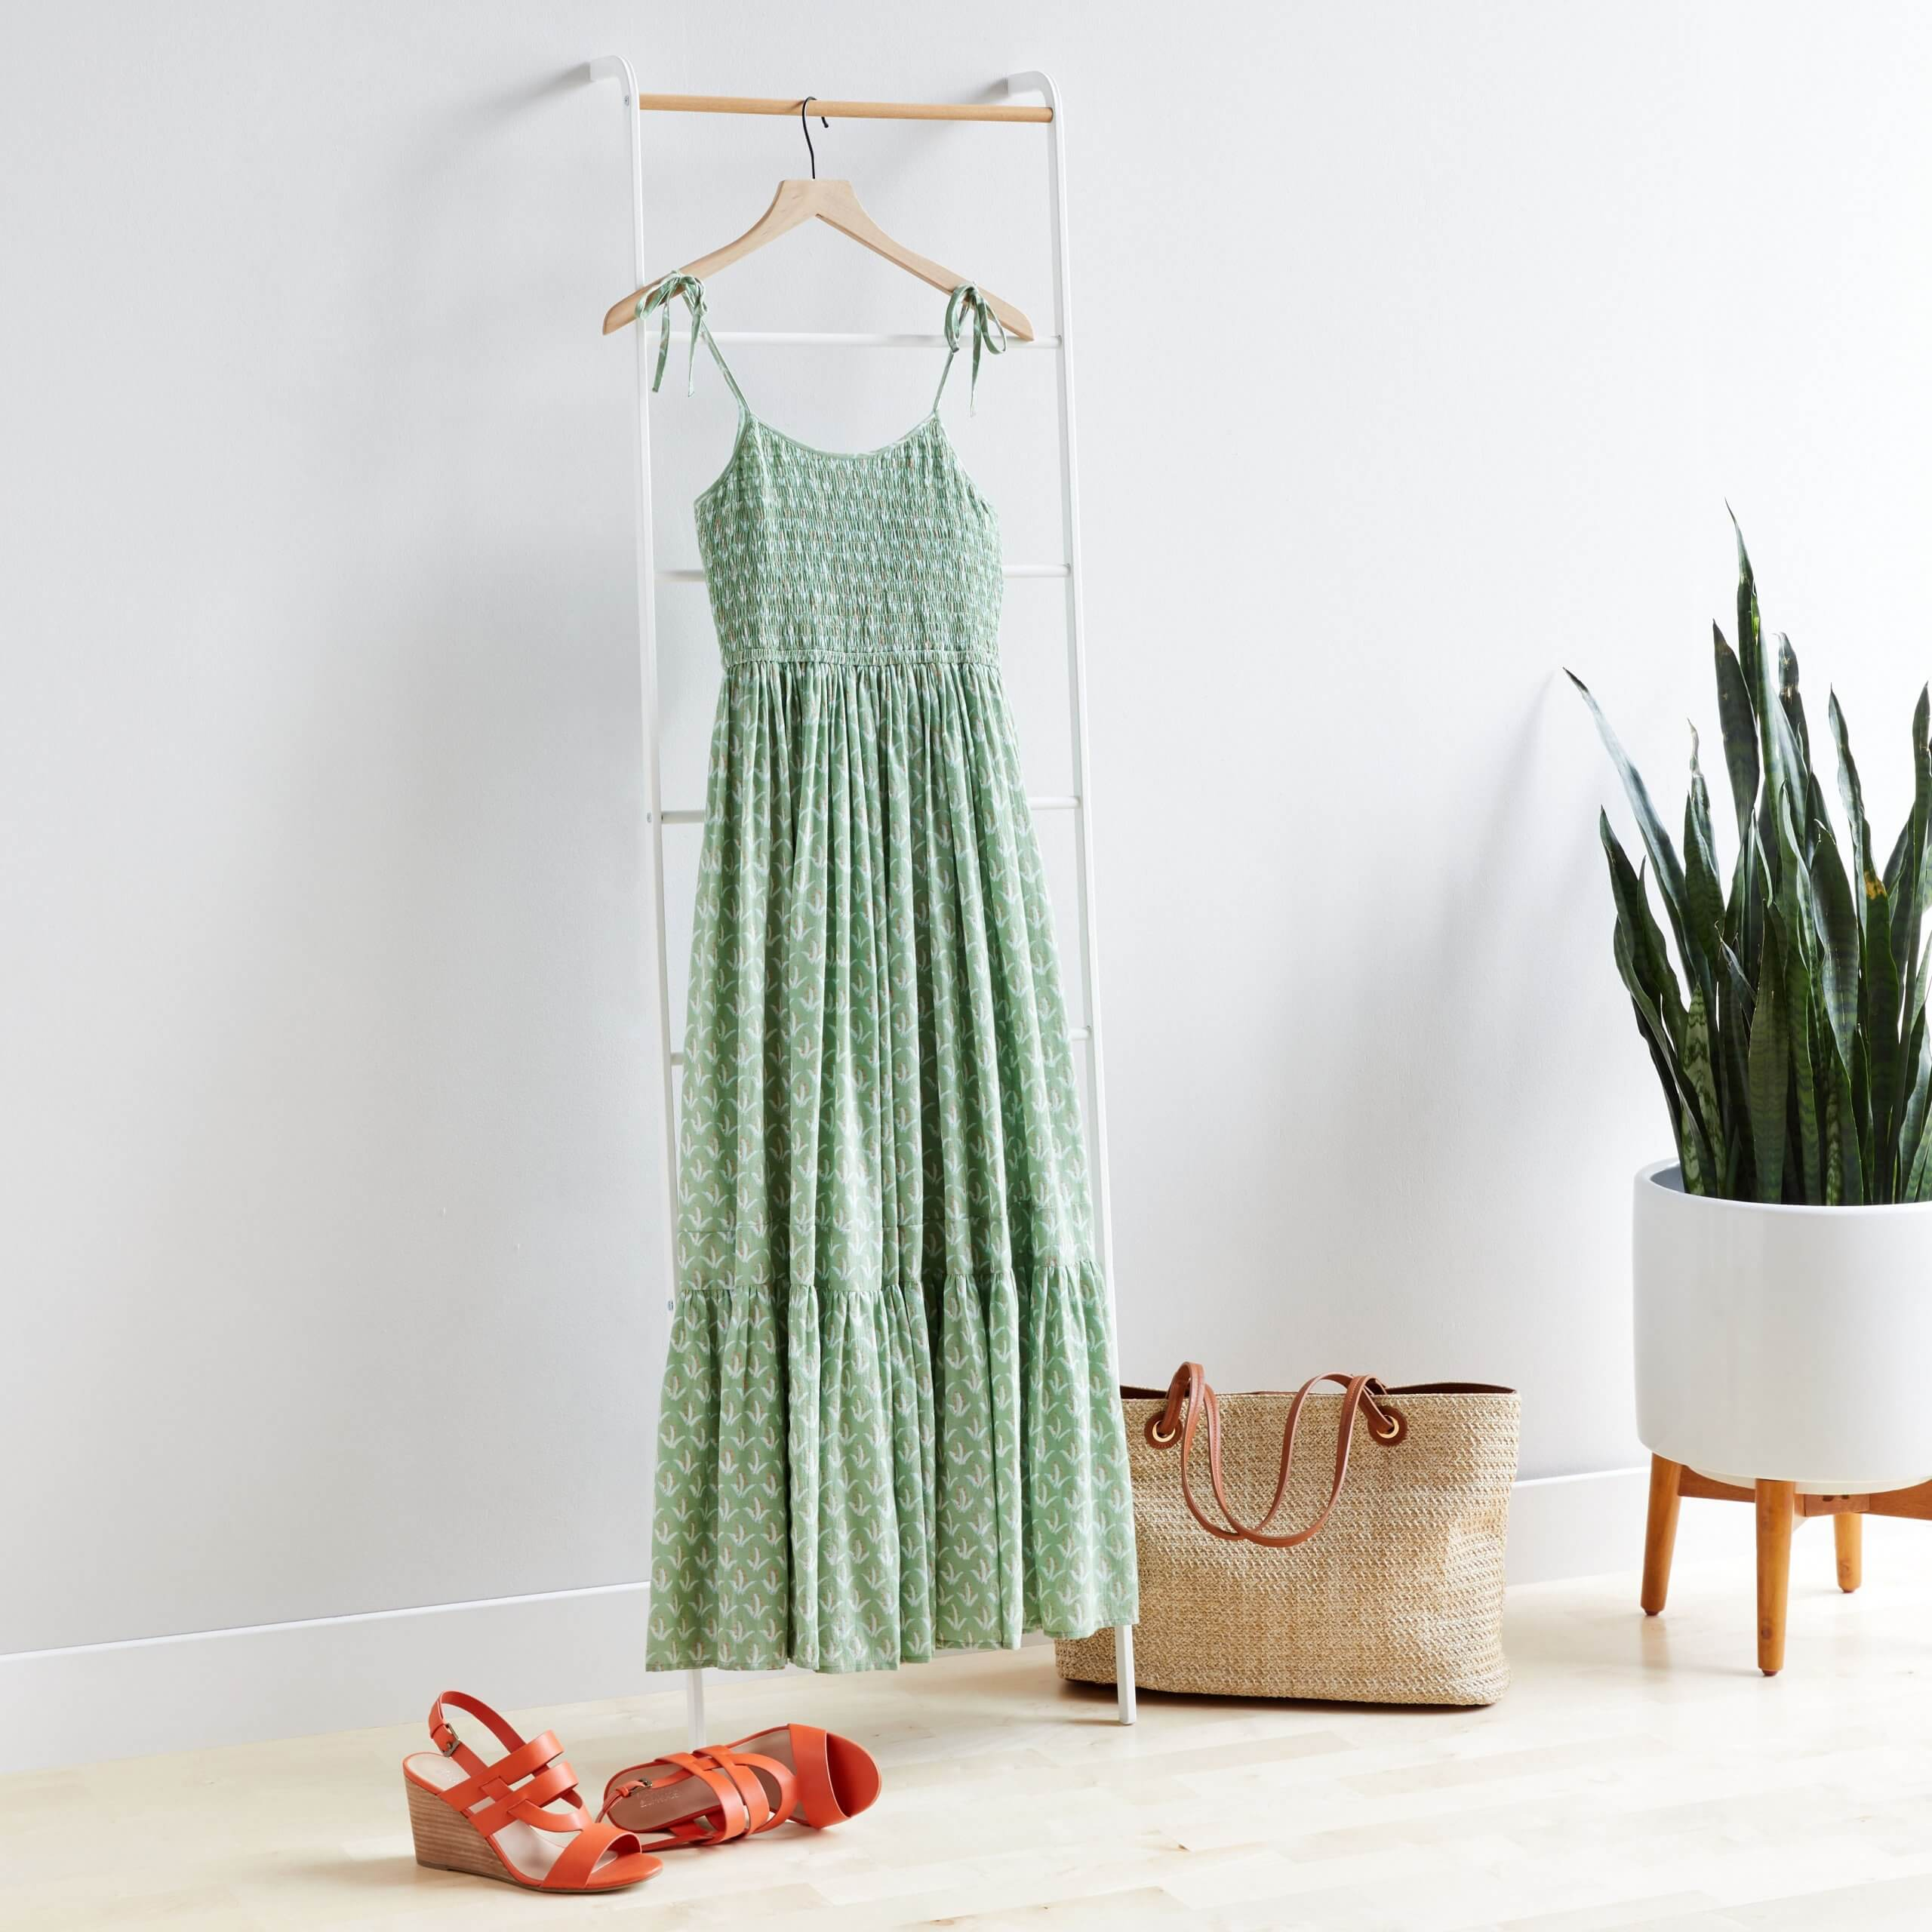 Stitch Fix Women's green maxi dress hanging on white rack next to tan tote bag and orange wedges.